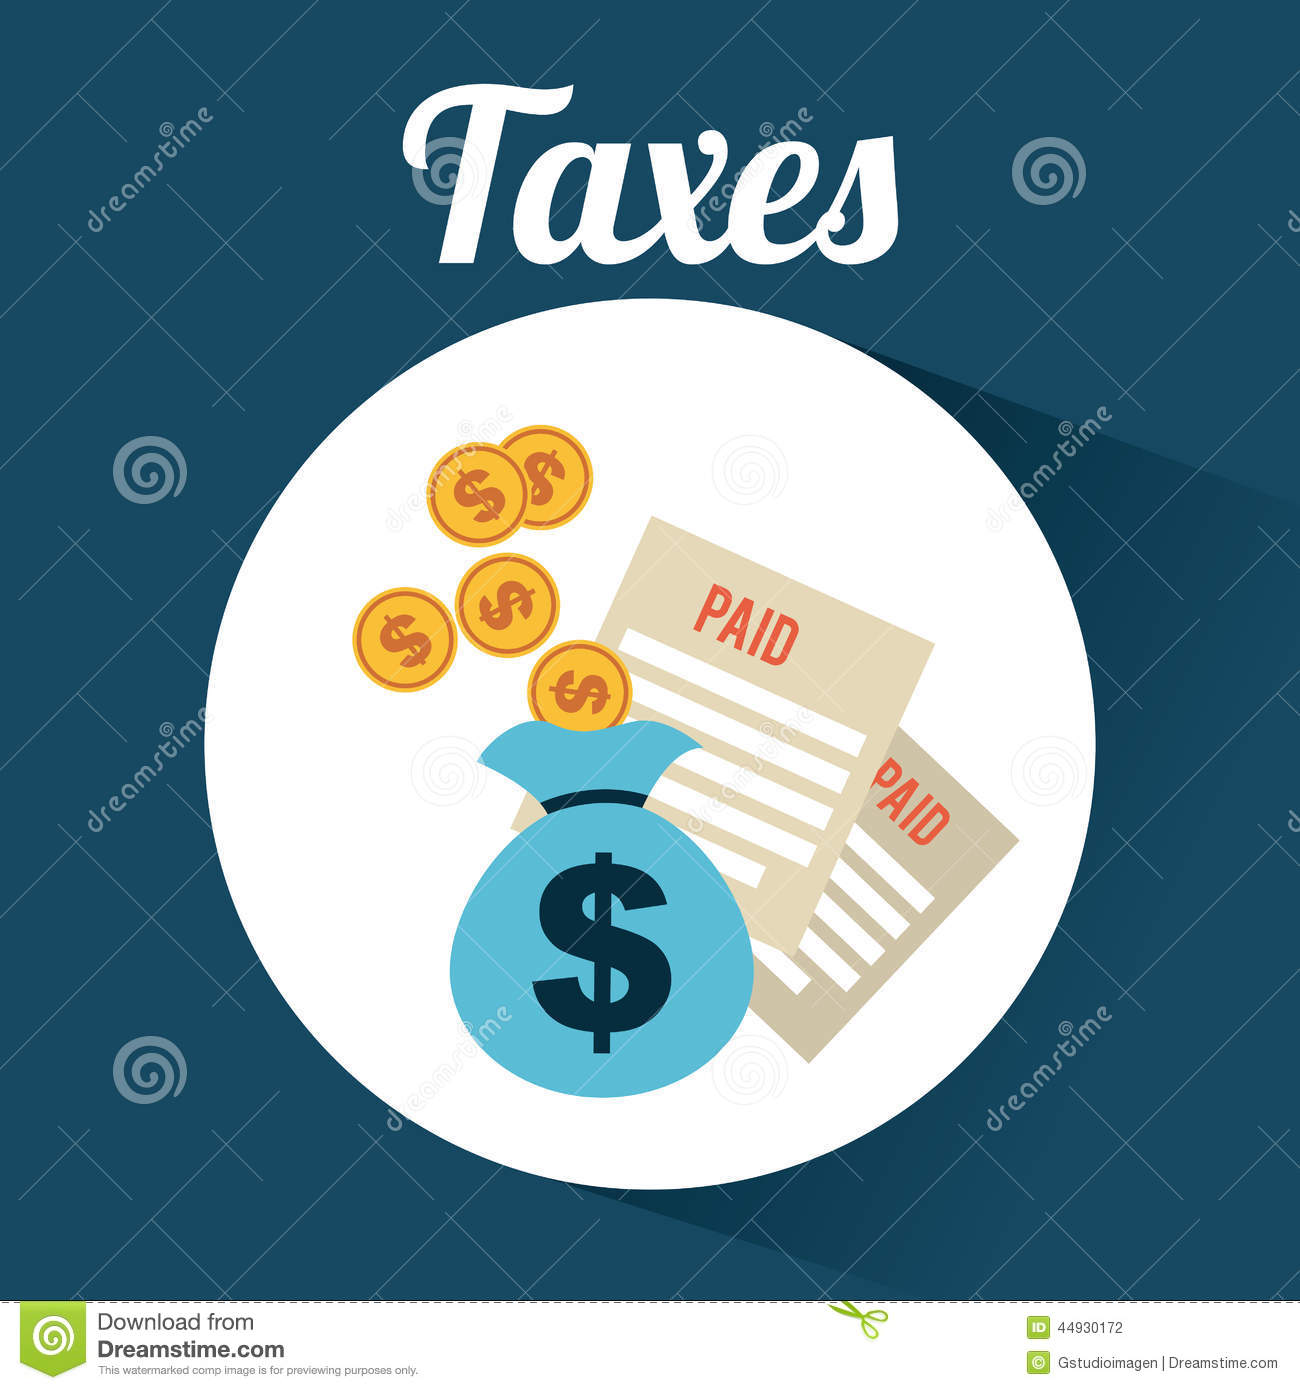 Taxes Design Stock Vector. Illustration Of Background